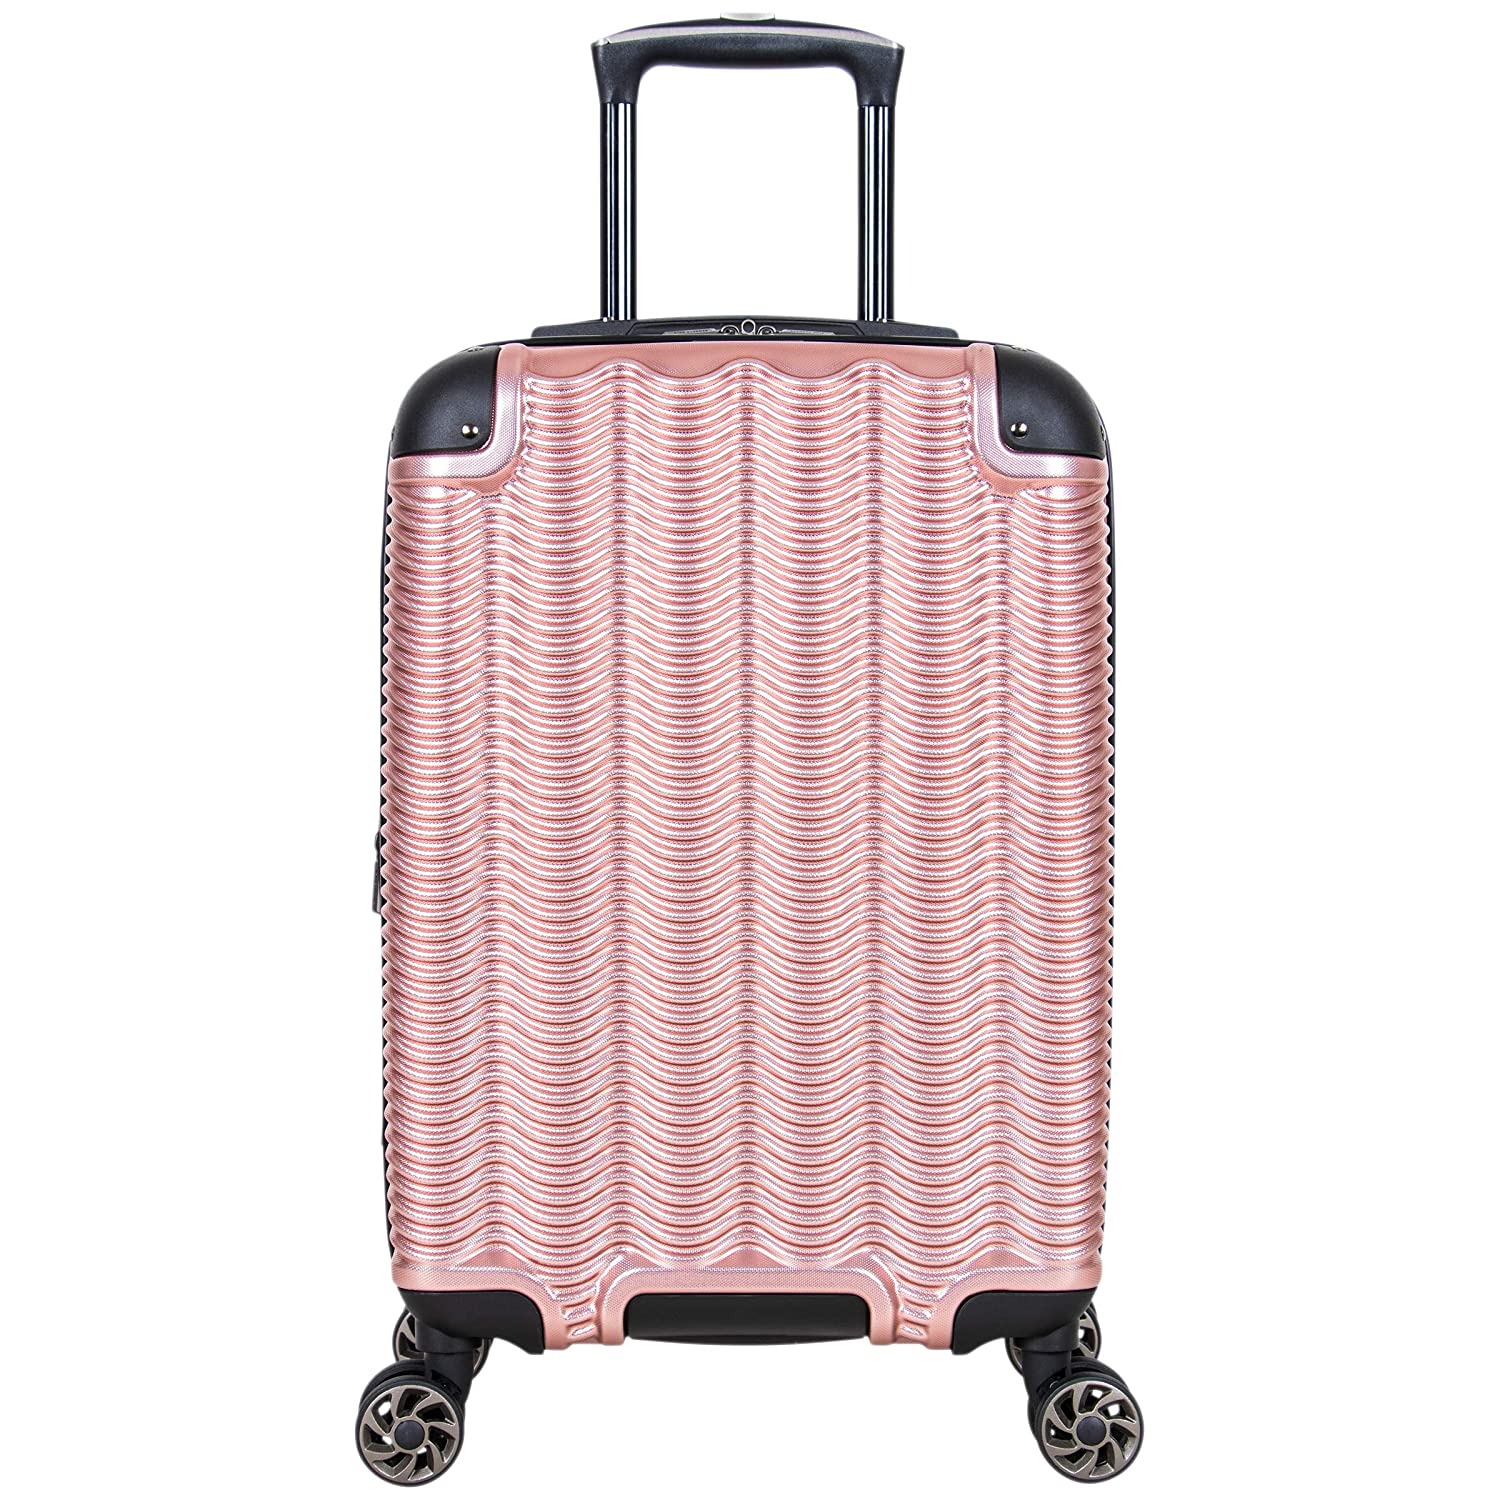 Kenneth Cole Reaction Wave Rush 20 Lightweight Hardside 8-Wheel Spinner Expandable Carry-On Suitcase, Rose Gold